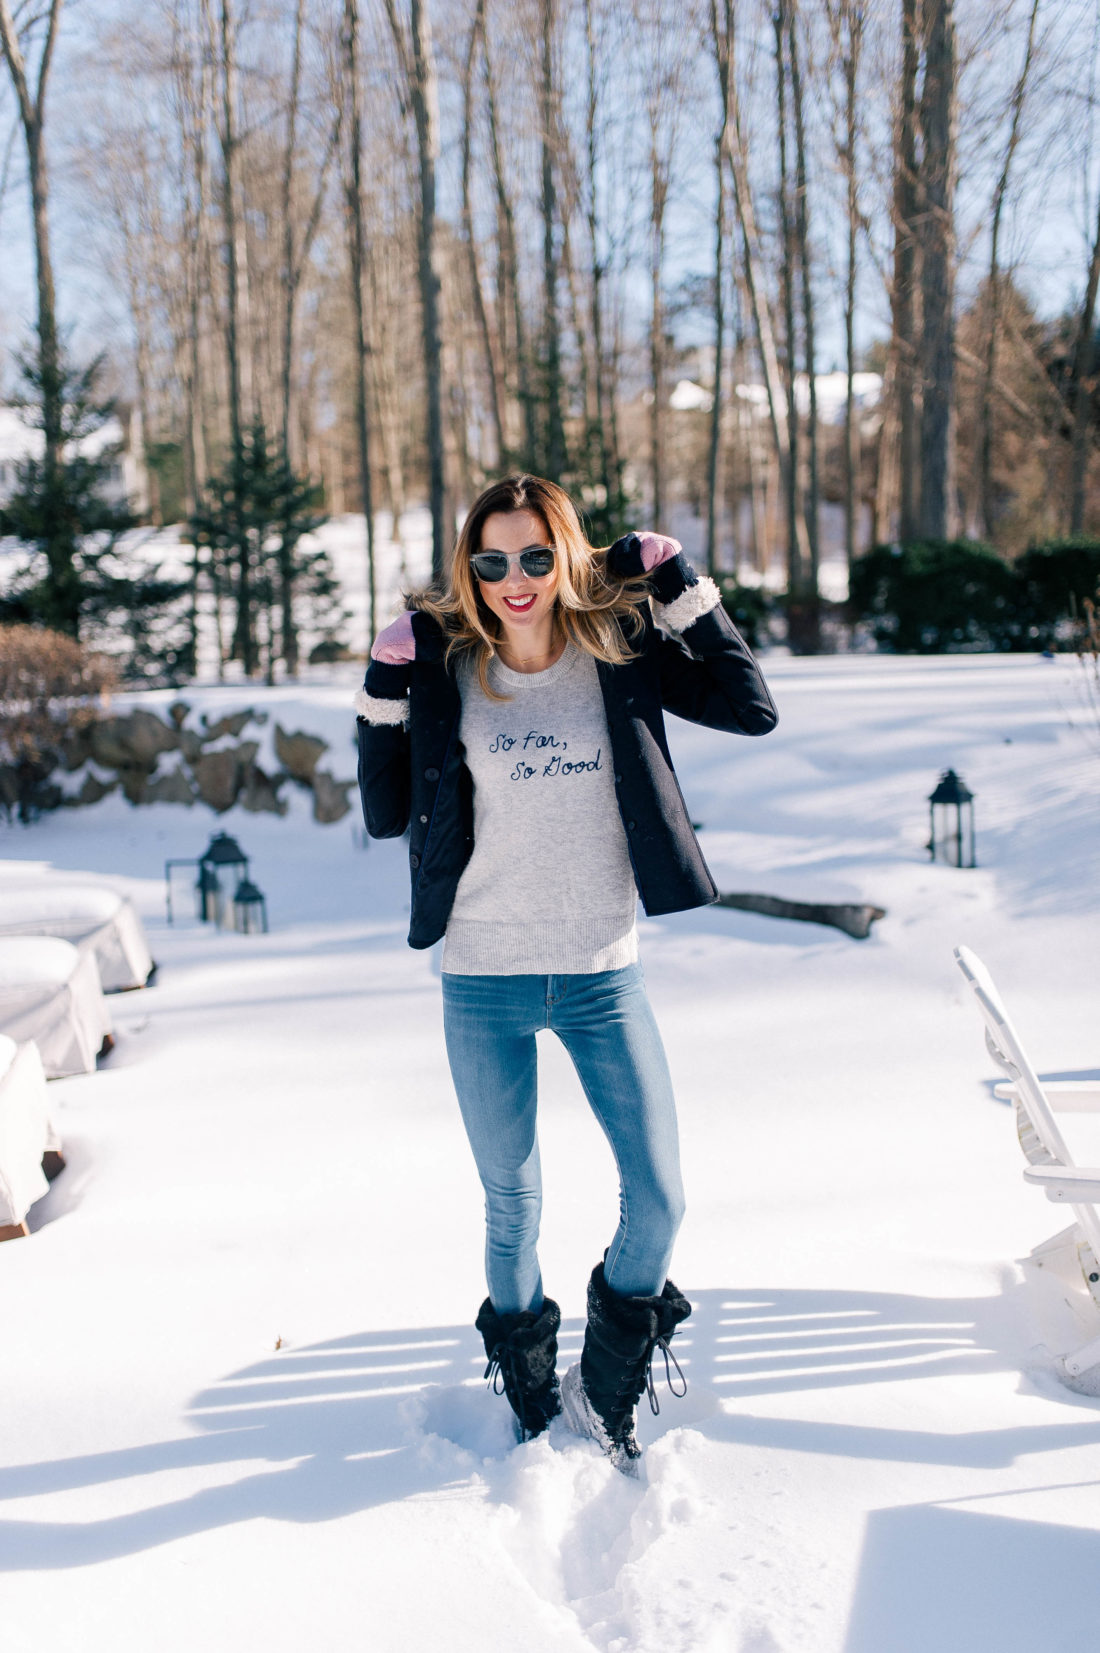 Eva Amurri Martino wears old navy jeans, black snow boots, a grey sweater and pea coat and stands in the snow outside her Connecticut home